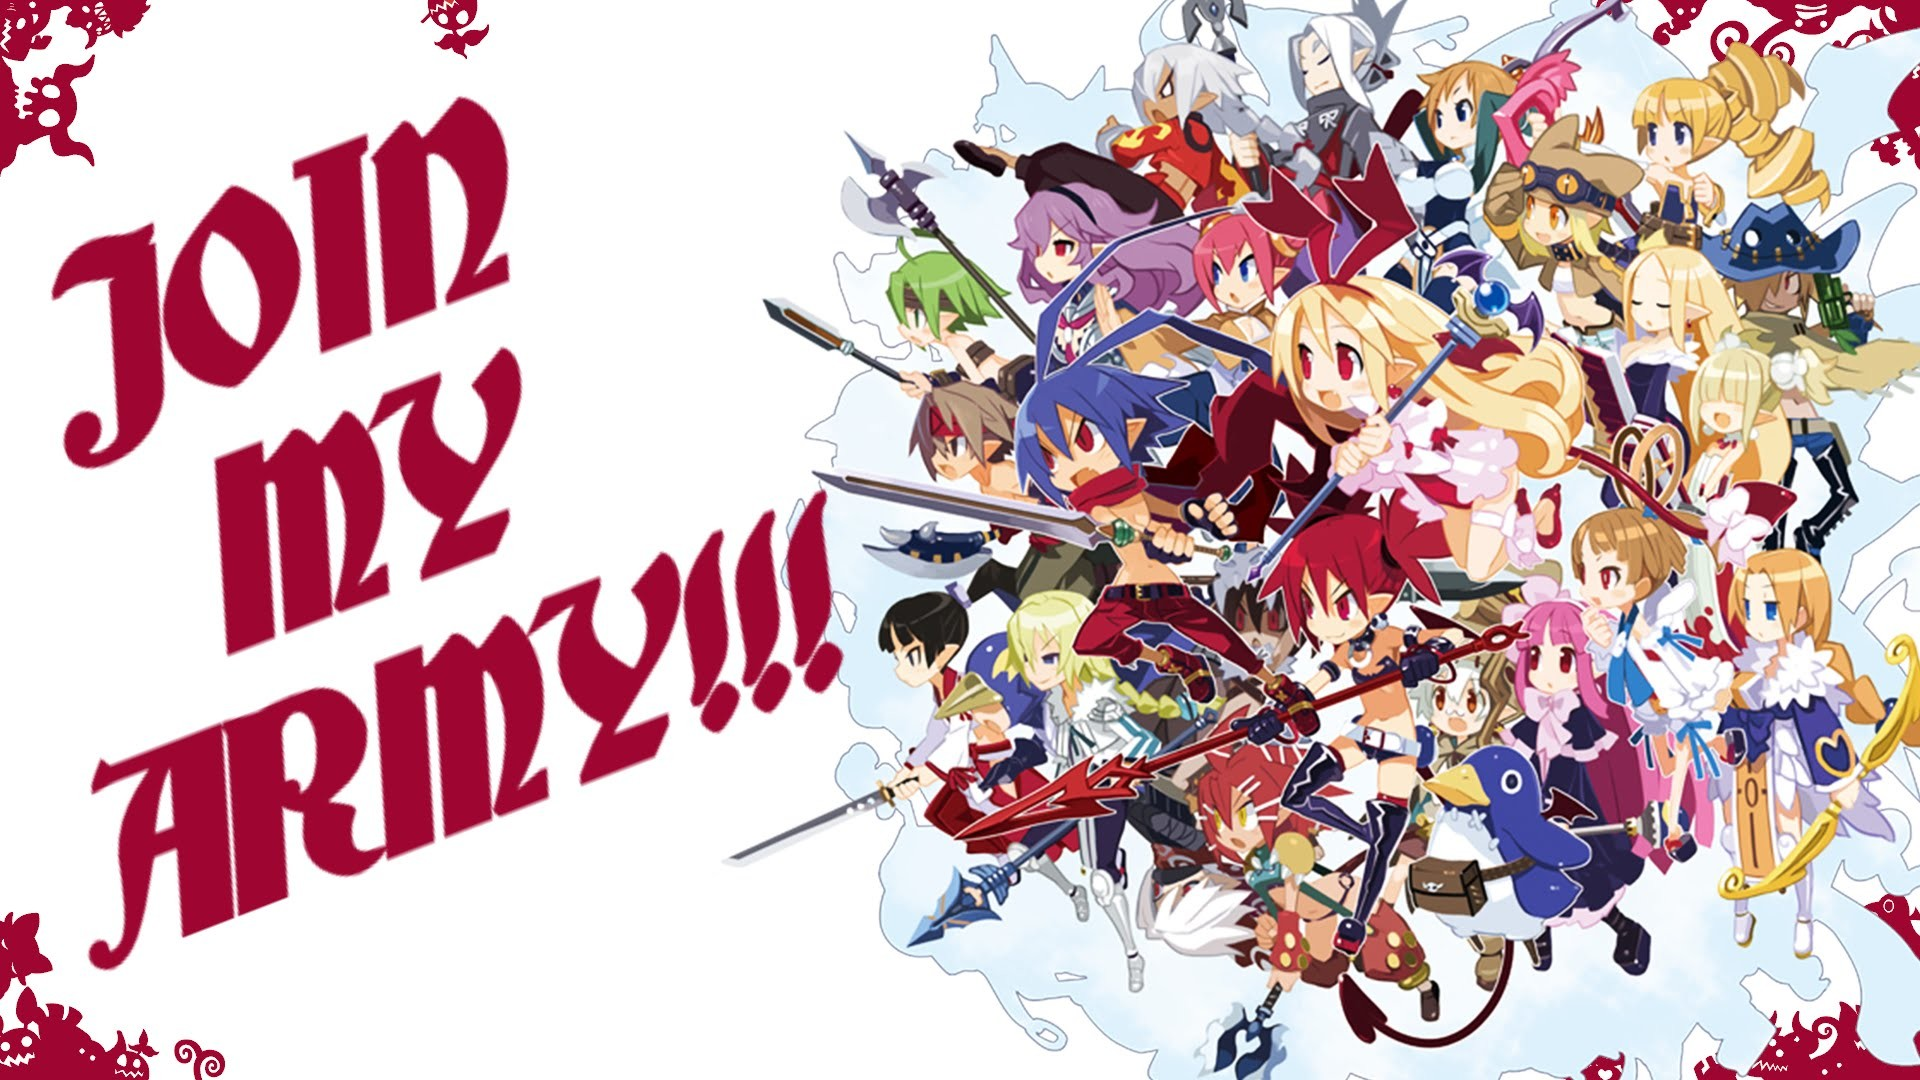 Res: 1920x1080, Disgaea HD Wallpapers 16 - 1920 X 1080